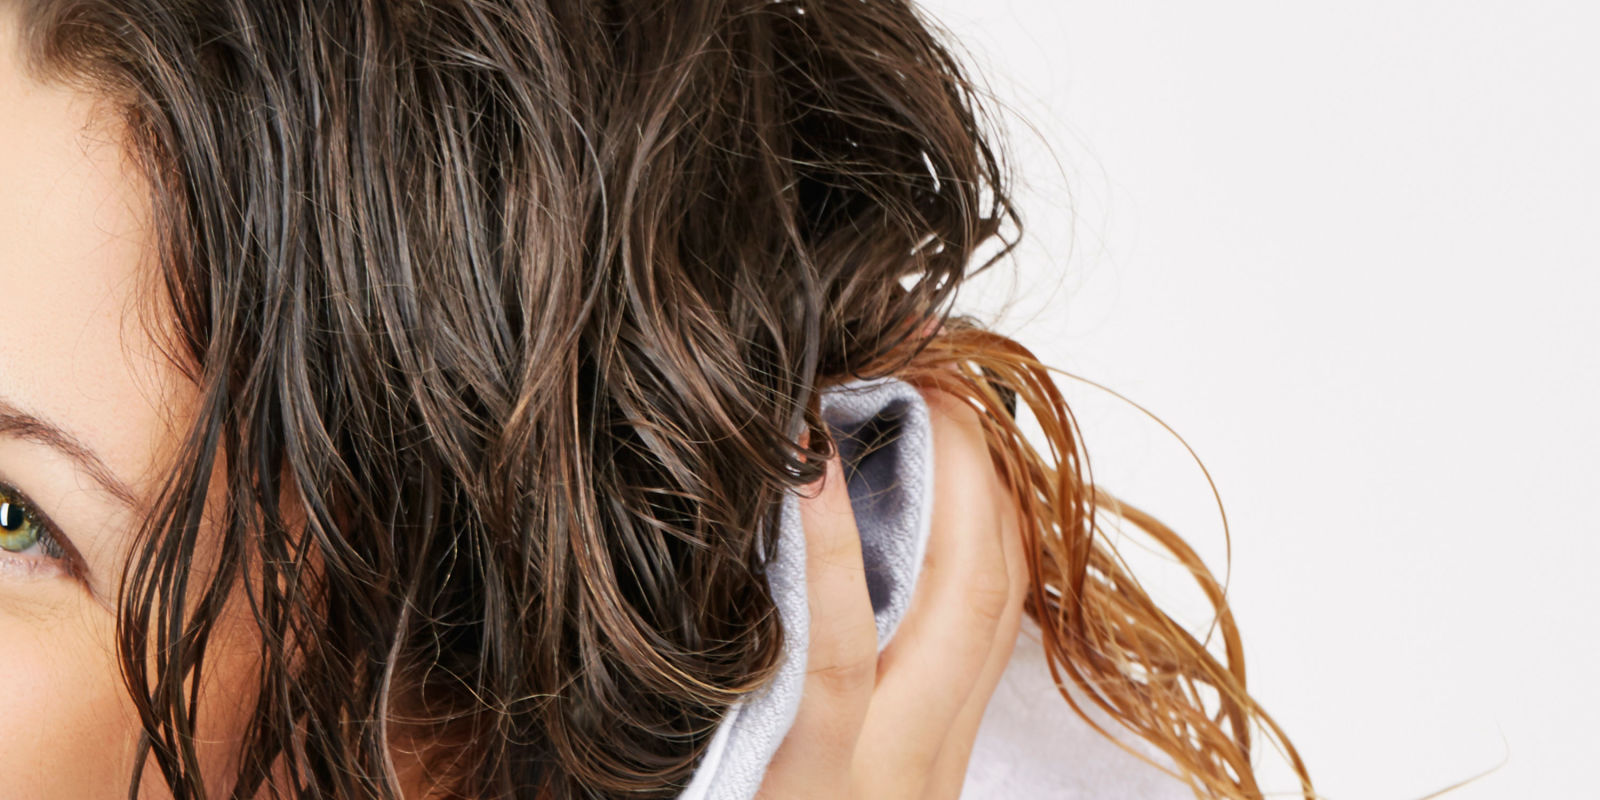 Why You Should Never Brush Or Towel Dry Wet Hair